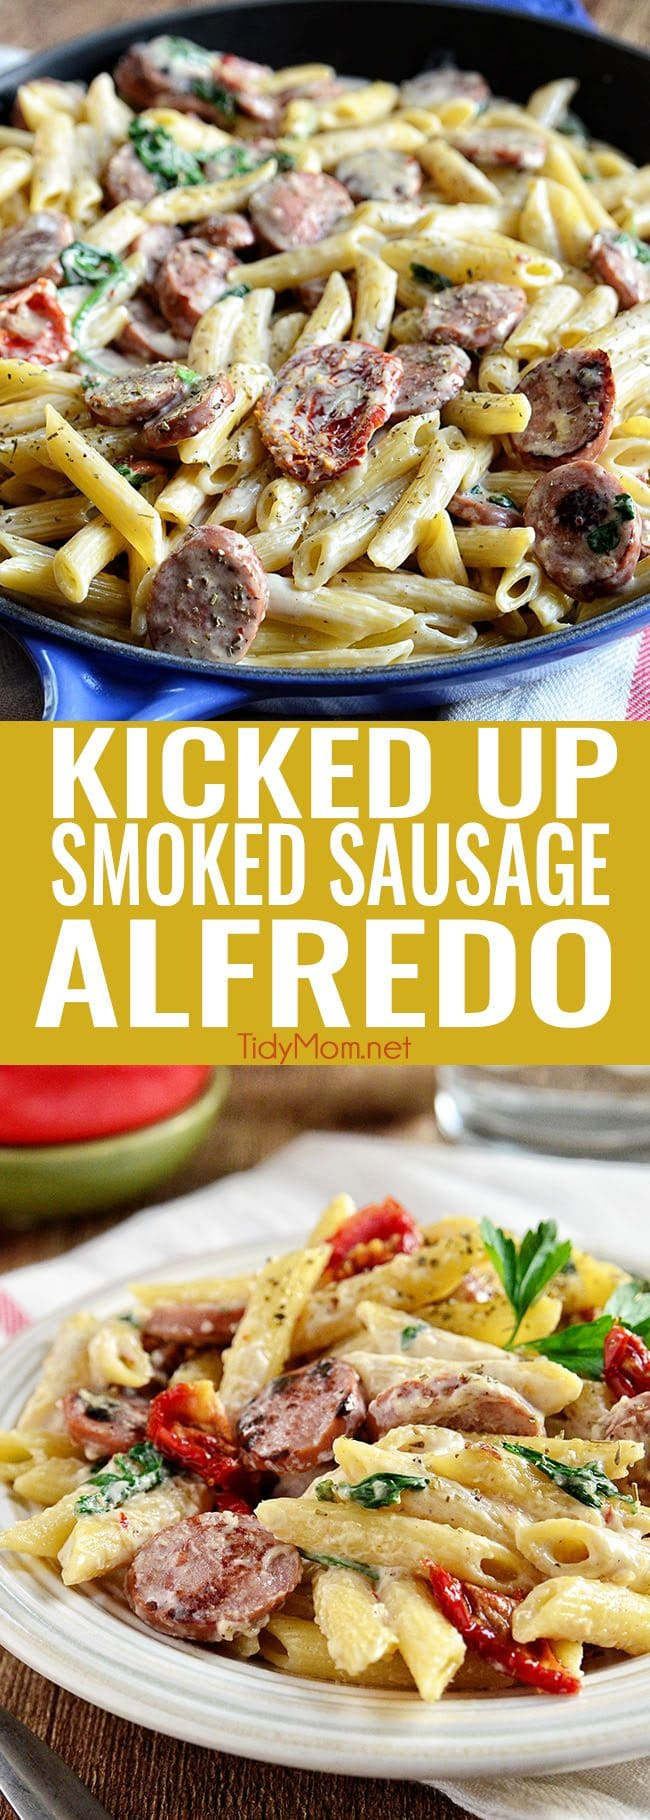 Savory smoked turkey sausage combined with sun-dried tomatoes, garlic, spinach, and Parmesan cheese make this a sensational 15-minute Smoked Sausage Alfredorecipe the whole family will love. Get the full printable recipe at TidyMom.net